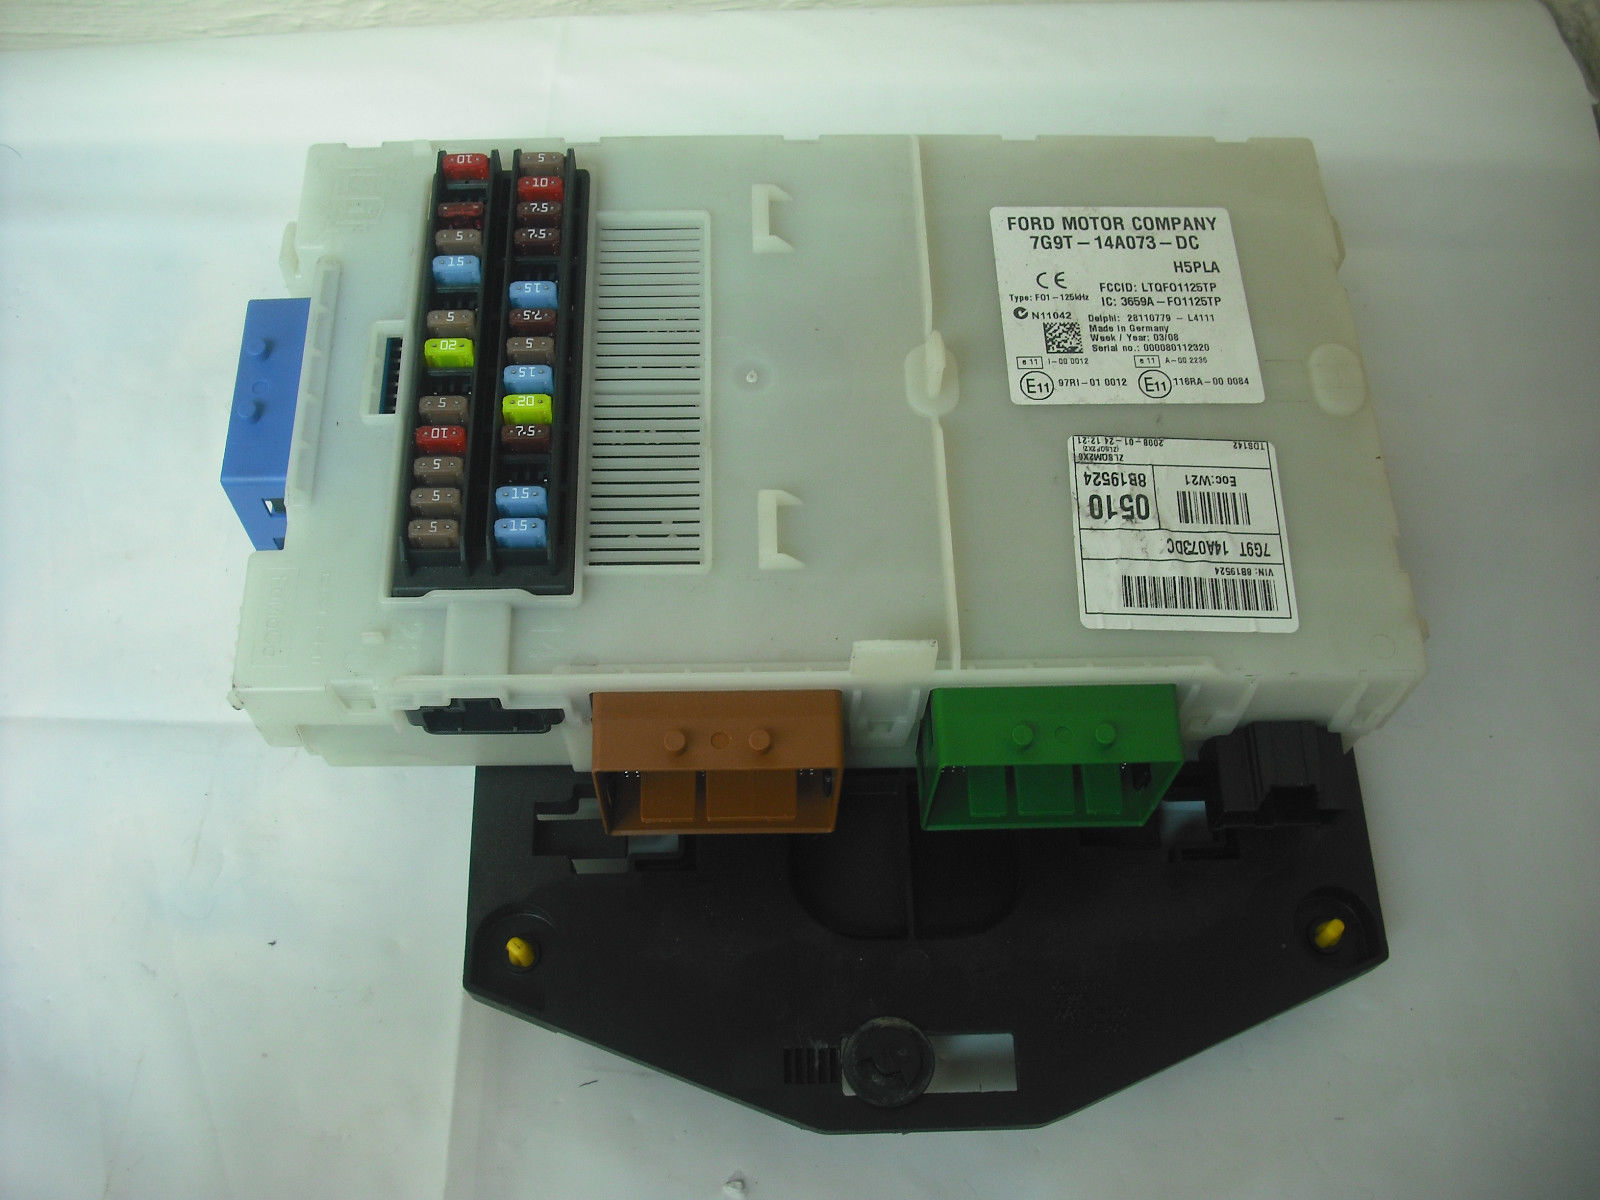 ford galaxy mk3 s max 2 0 tdci fuse box ecu sam unit 7g9t 14a073 dc rh 2cb6df 39 ekmpowershop net 2003 Ford F-150 Fuse Diagram 2007 Ford Edge Fuse Diagram